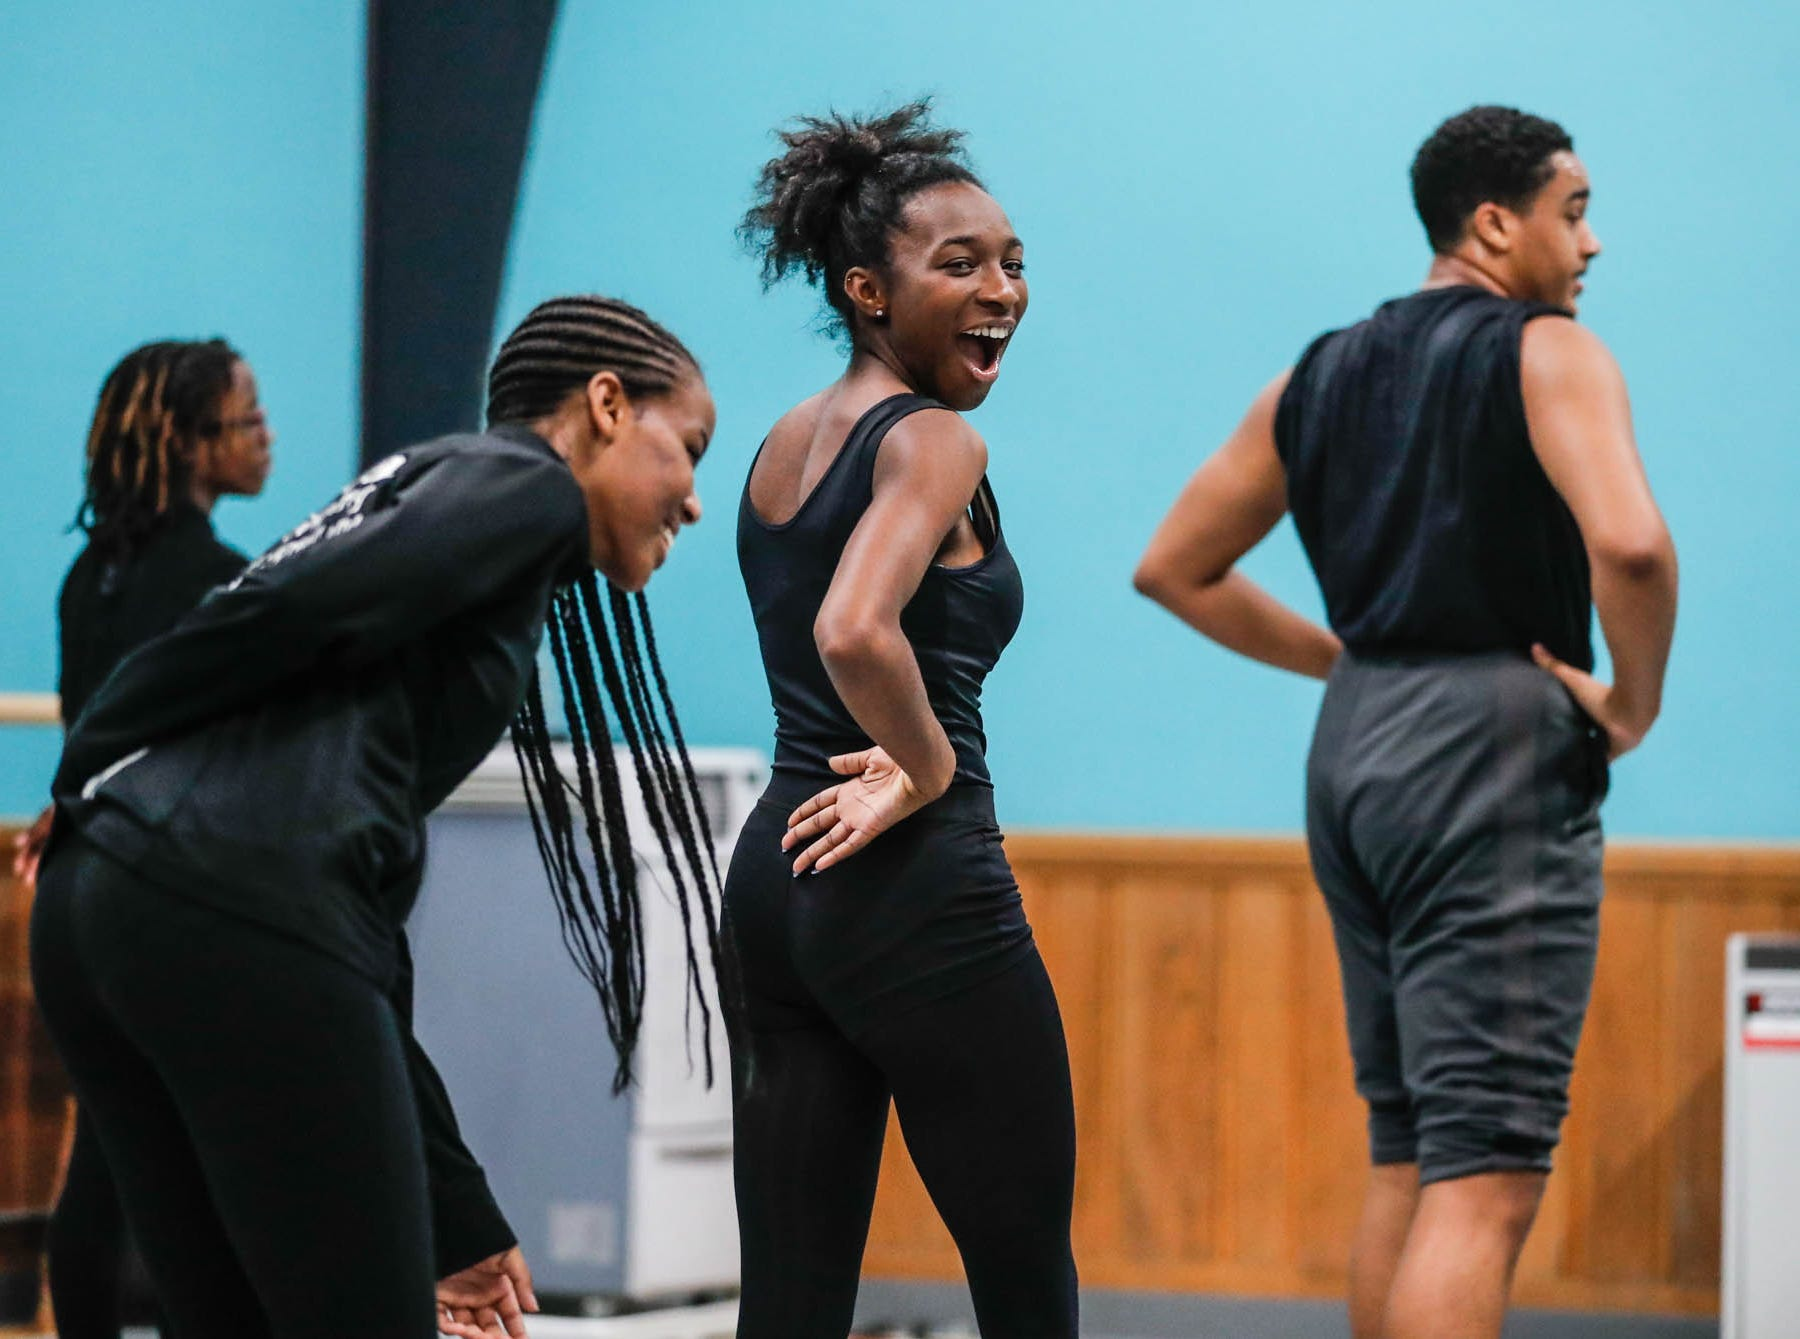 Iyannah Eaton, center, laughs while learning a dance routine during an Iibada Dance Company class at Broadway United Methodist Church in Indianapolis Ind. on Wednesday, Oct. 31, 2018. The children's nonprofit dance studio teaches cultural enrichment, discipline, and positive self-esteem through the art of dance.